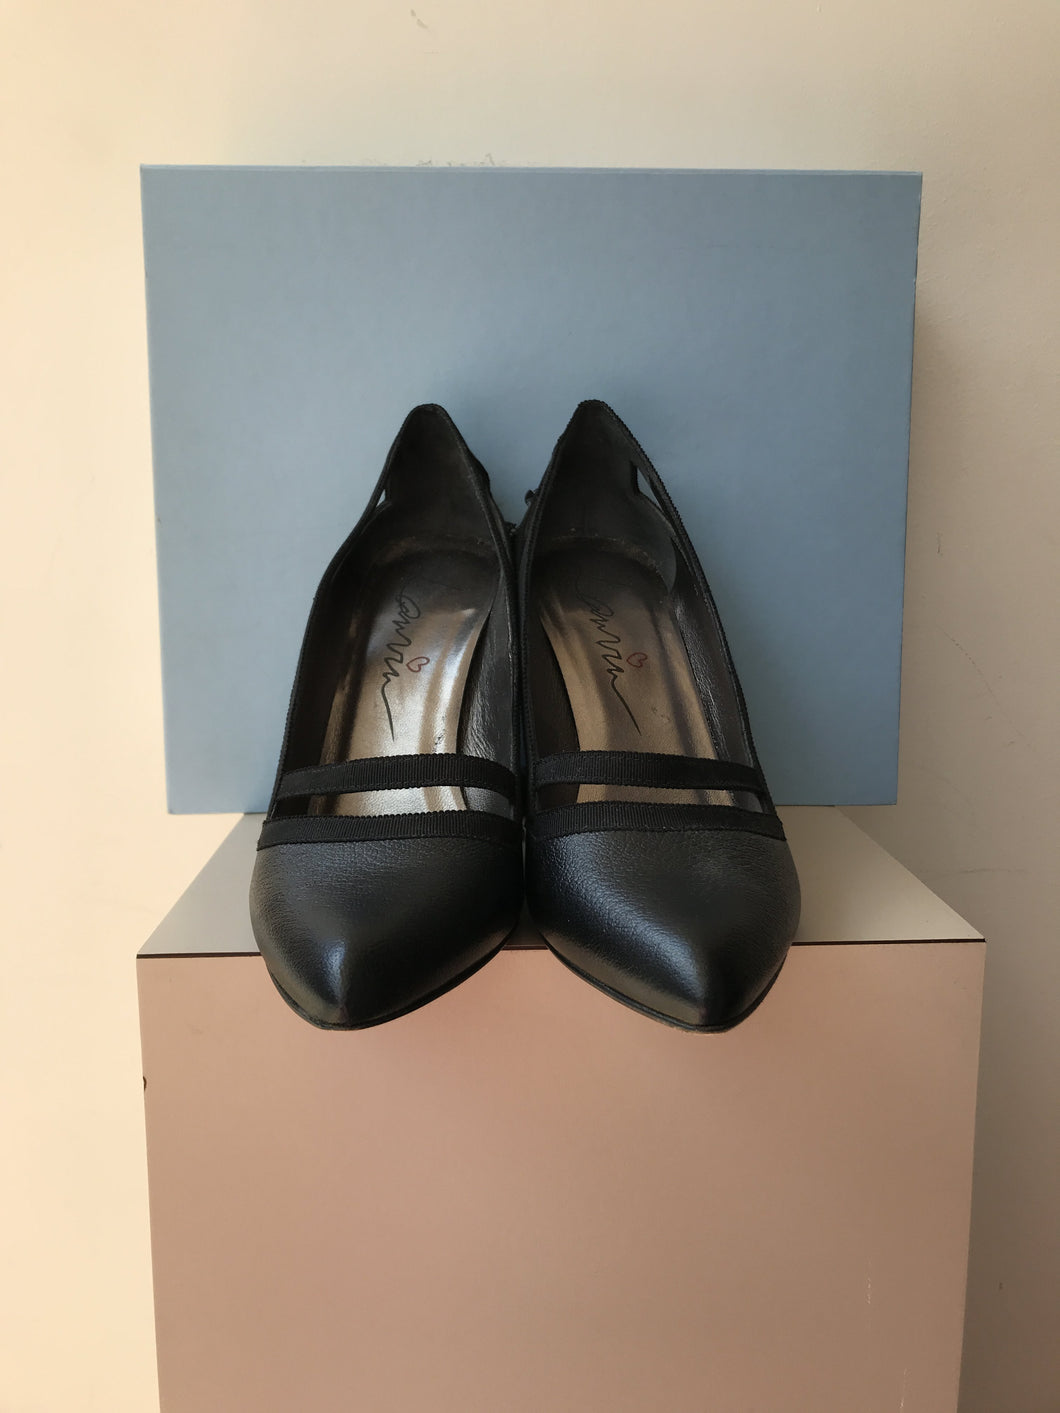 Lanvin black leather cut out pumps size 39.5 - My Girlfriend's Wardrobe York Pa